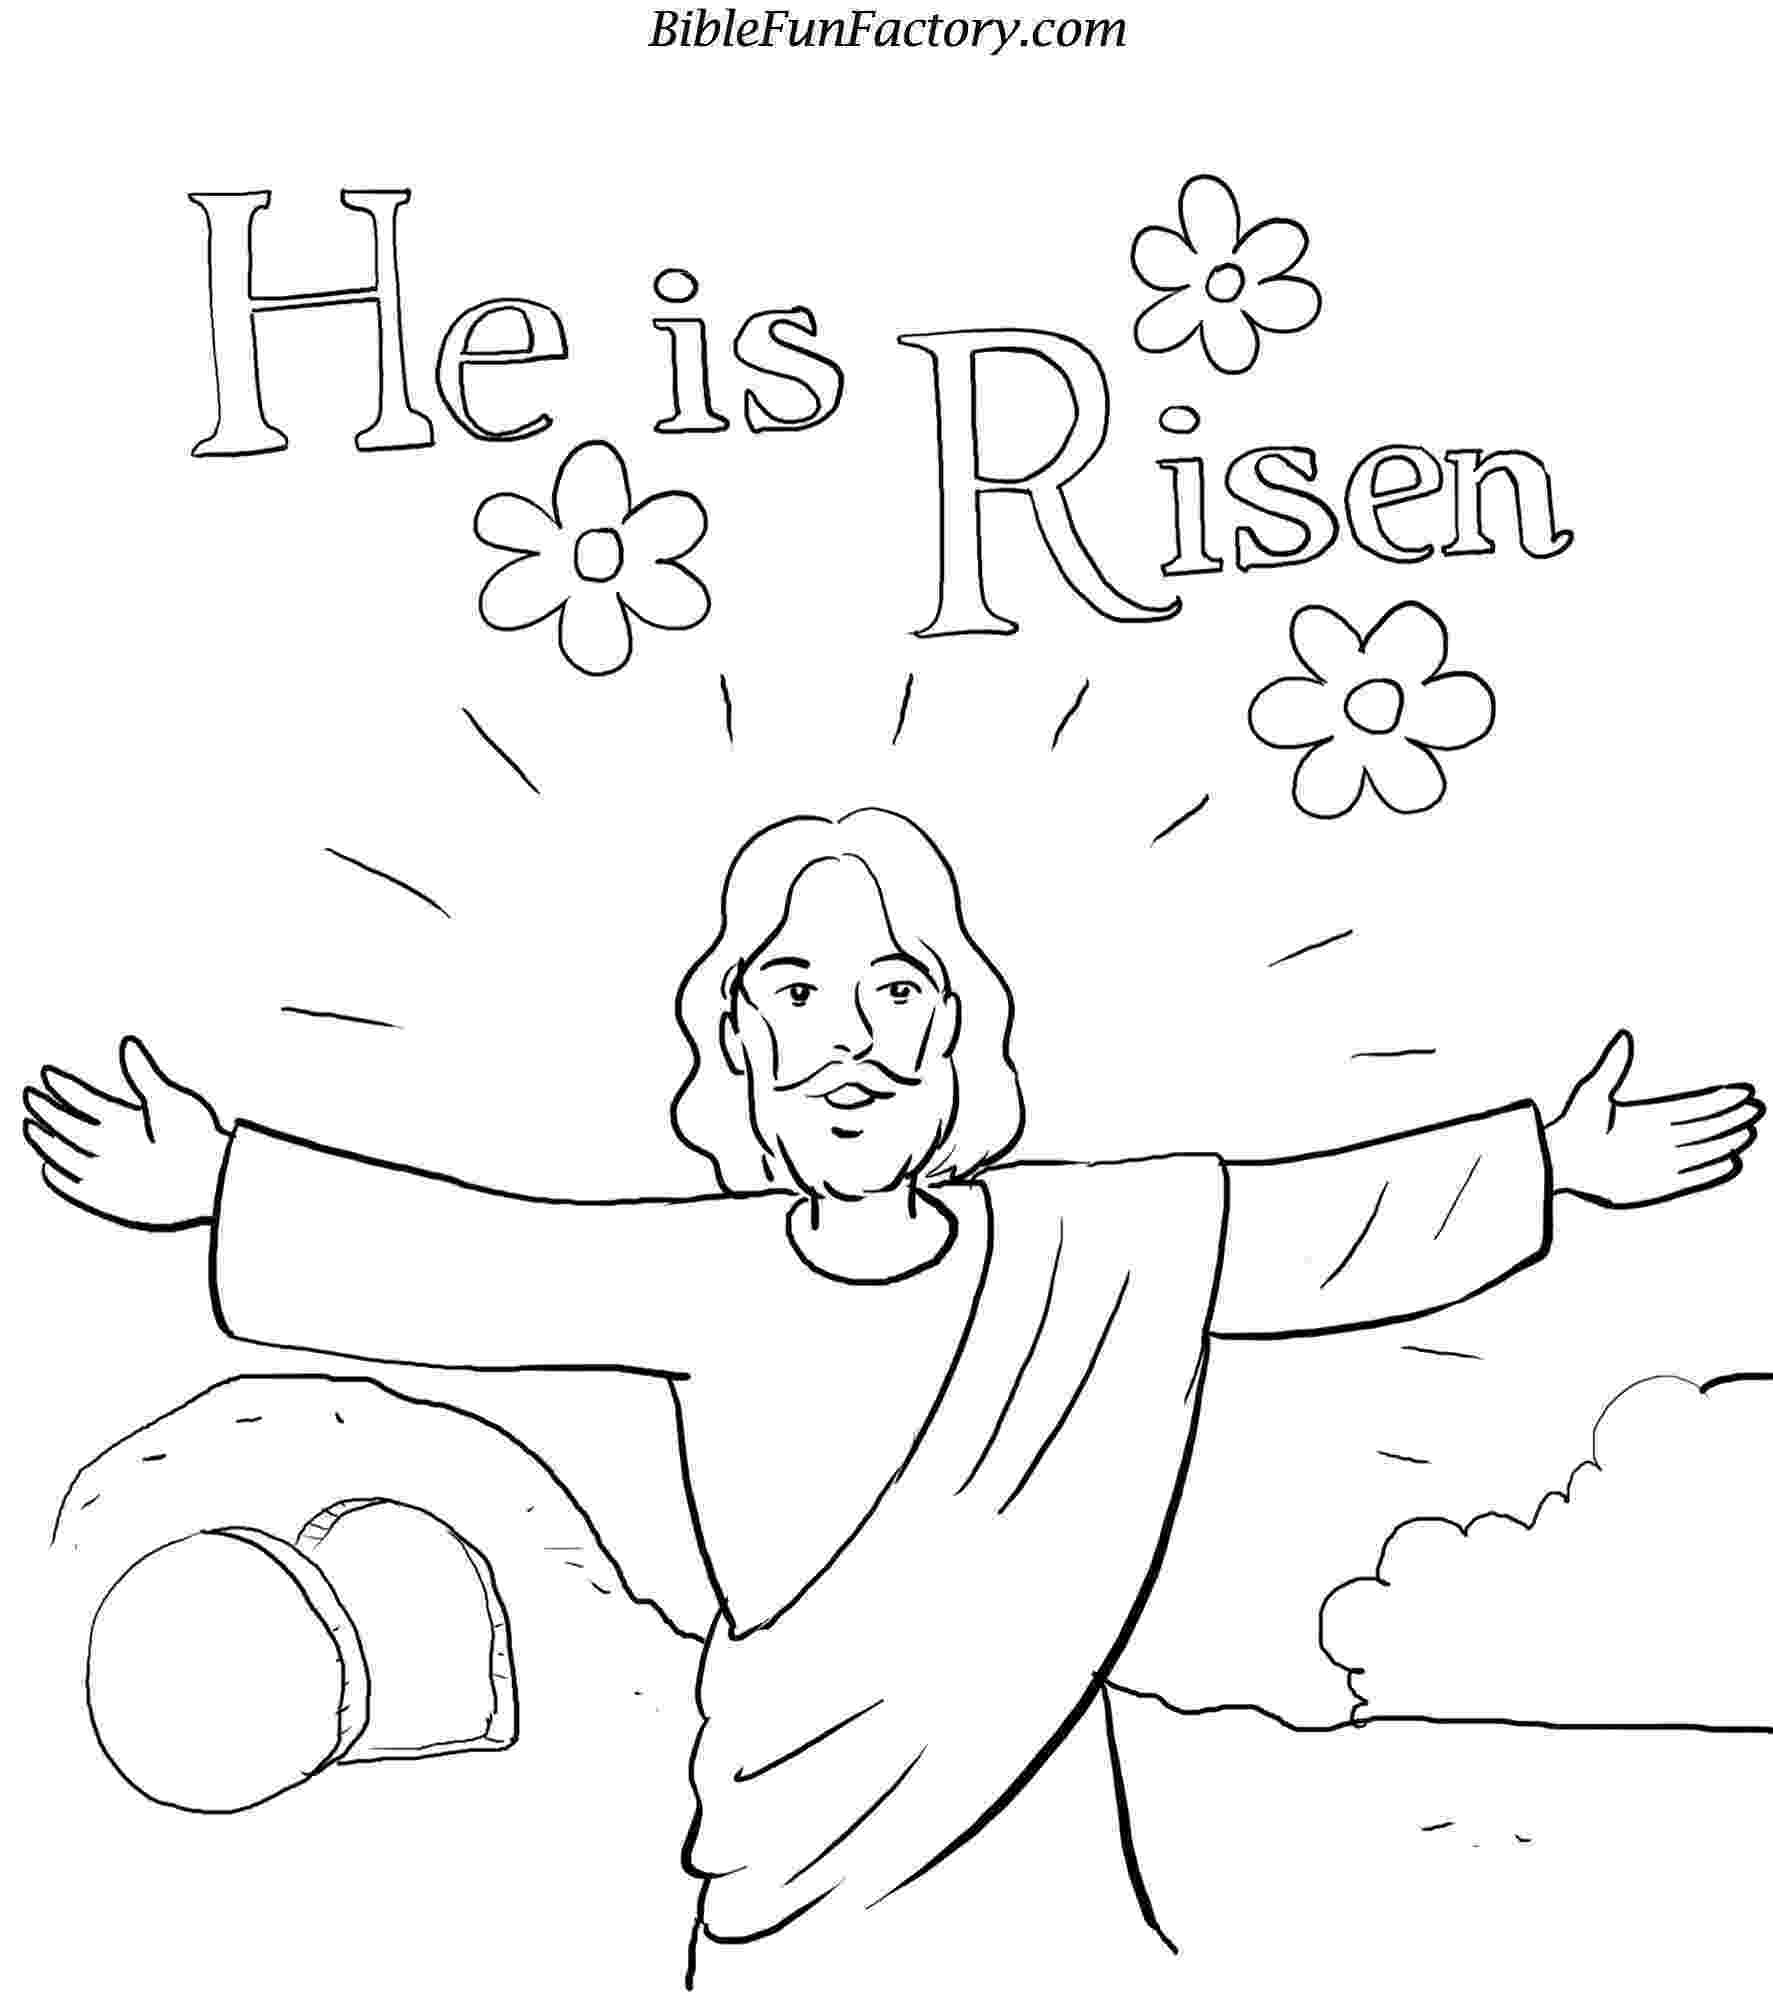 easter coloring pictures for preschoolers 17 best images about easter coloring pages on pinterest preschoolers coloring easter pictures for